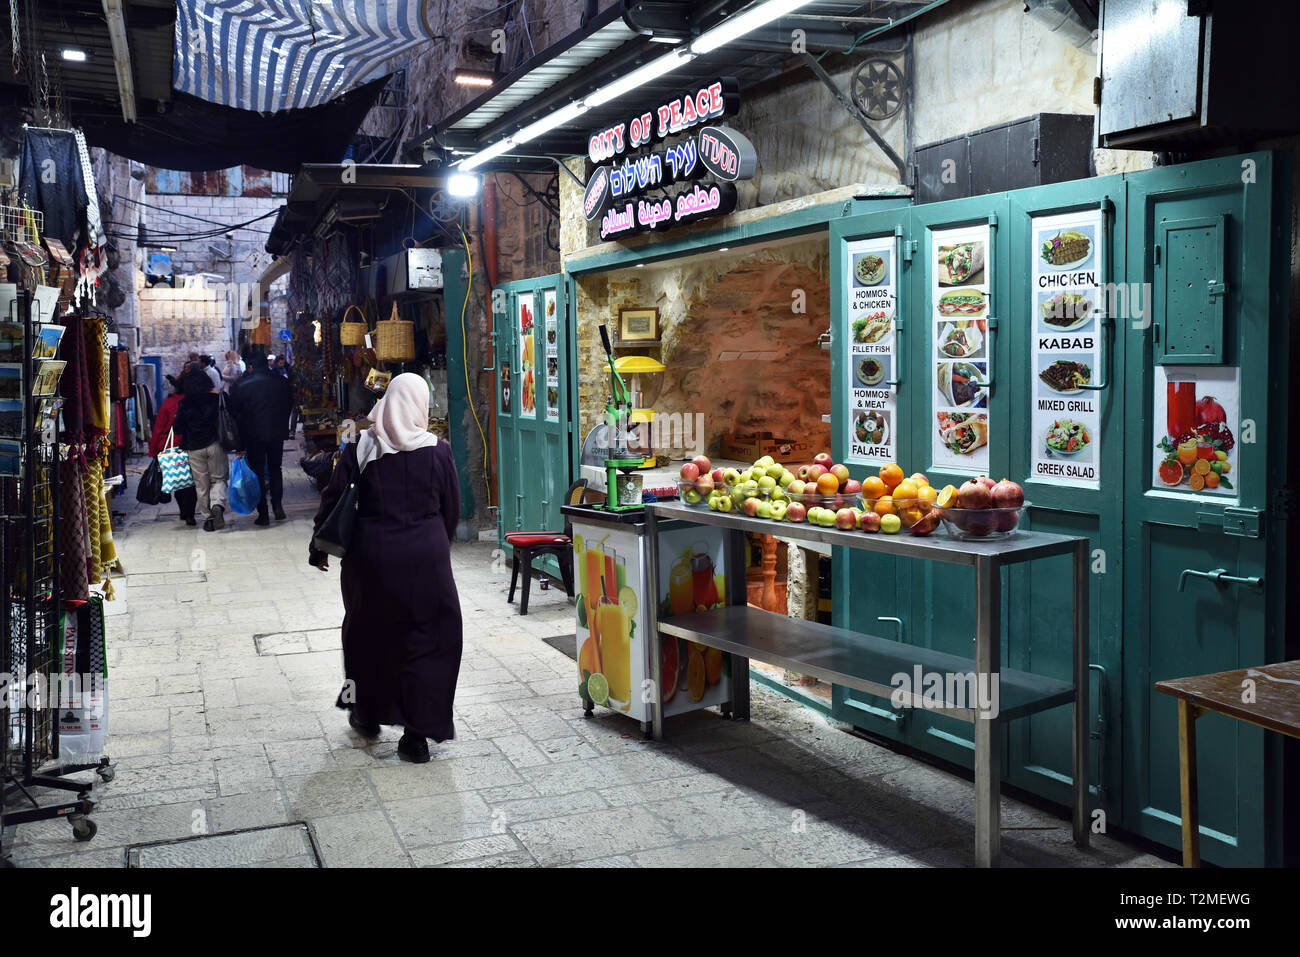 Arabic restaurant 'City of Peace' in the walled Old City of Jerusalem. Stock Photo